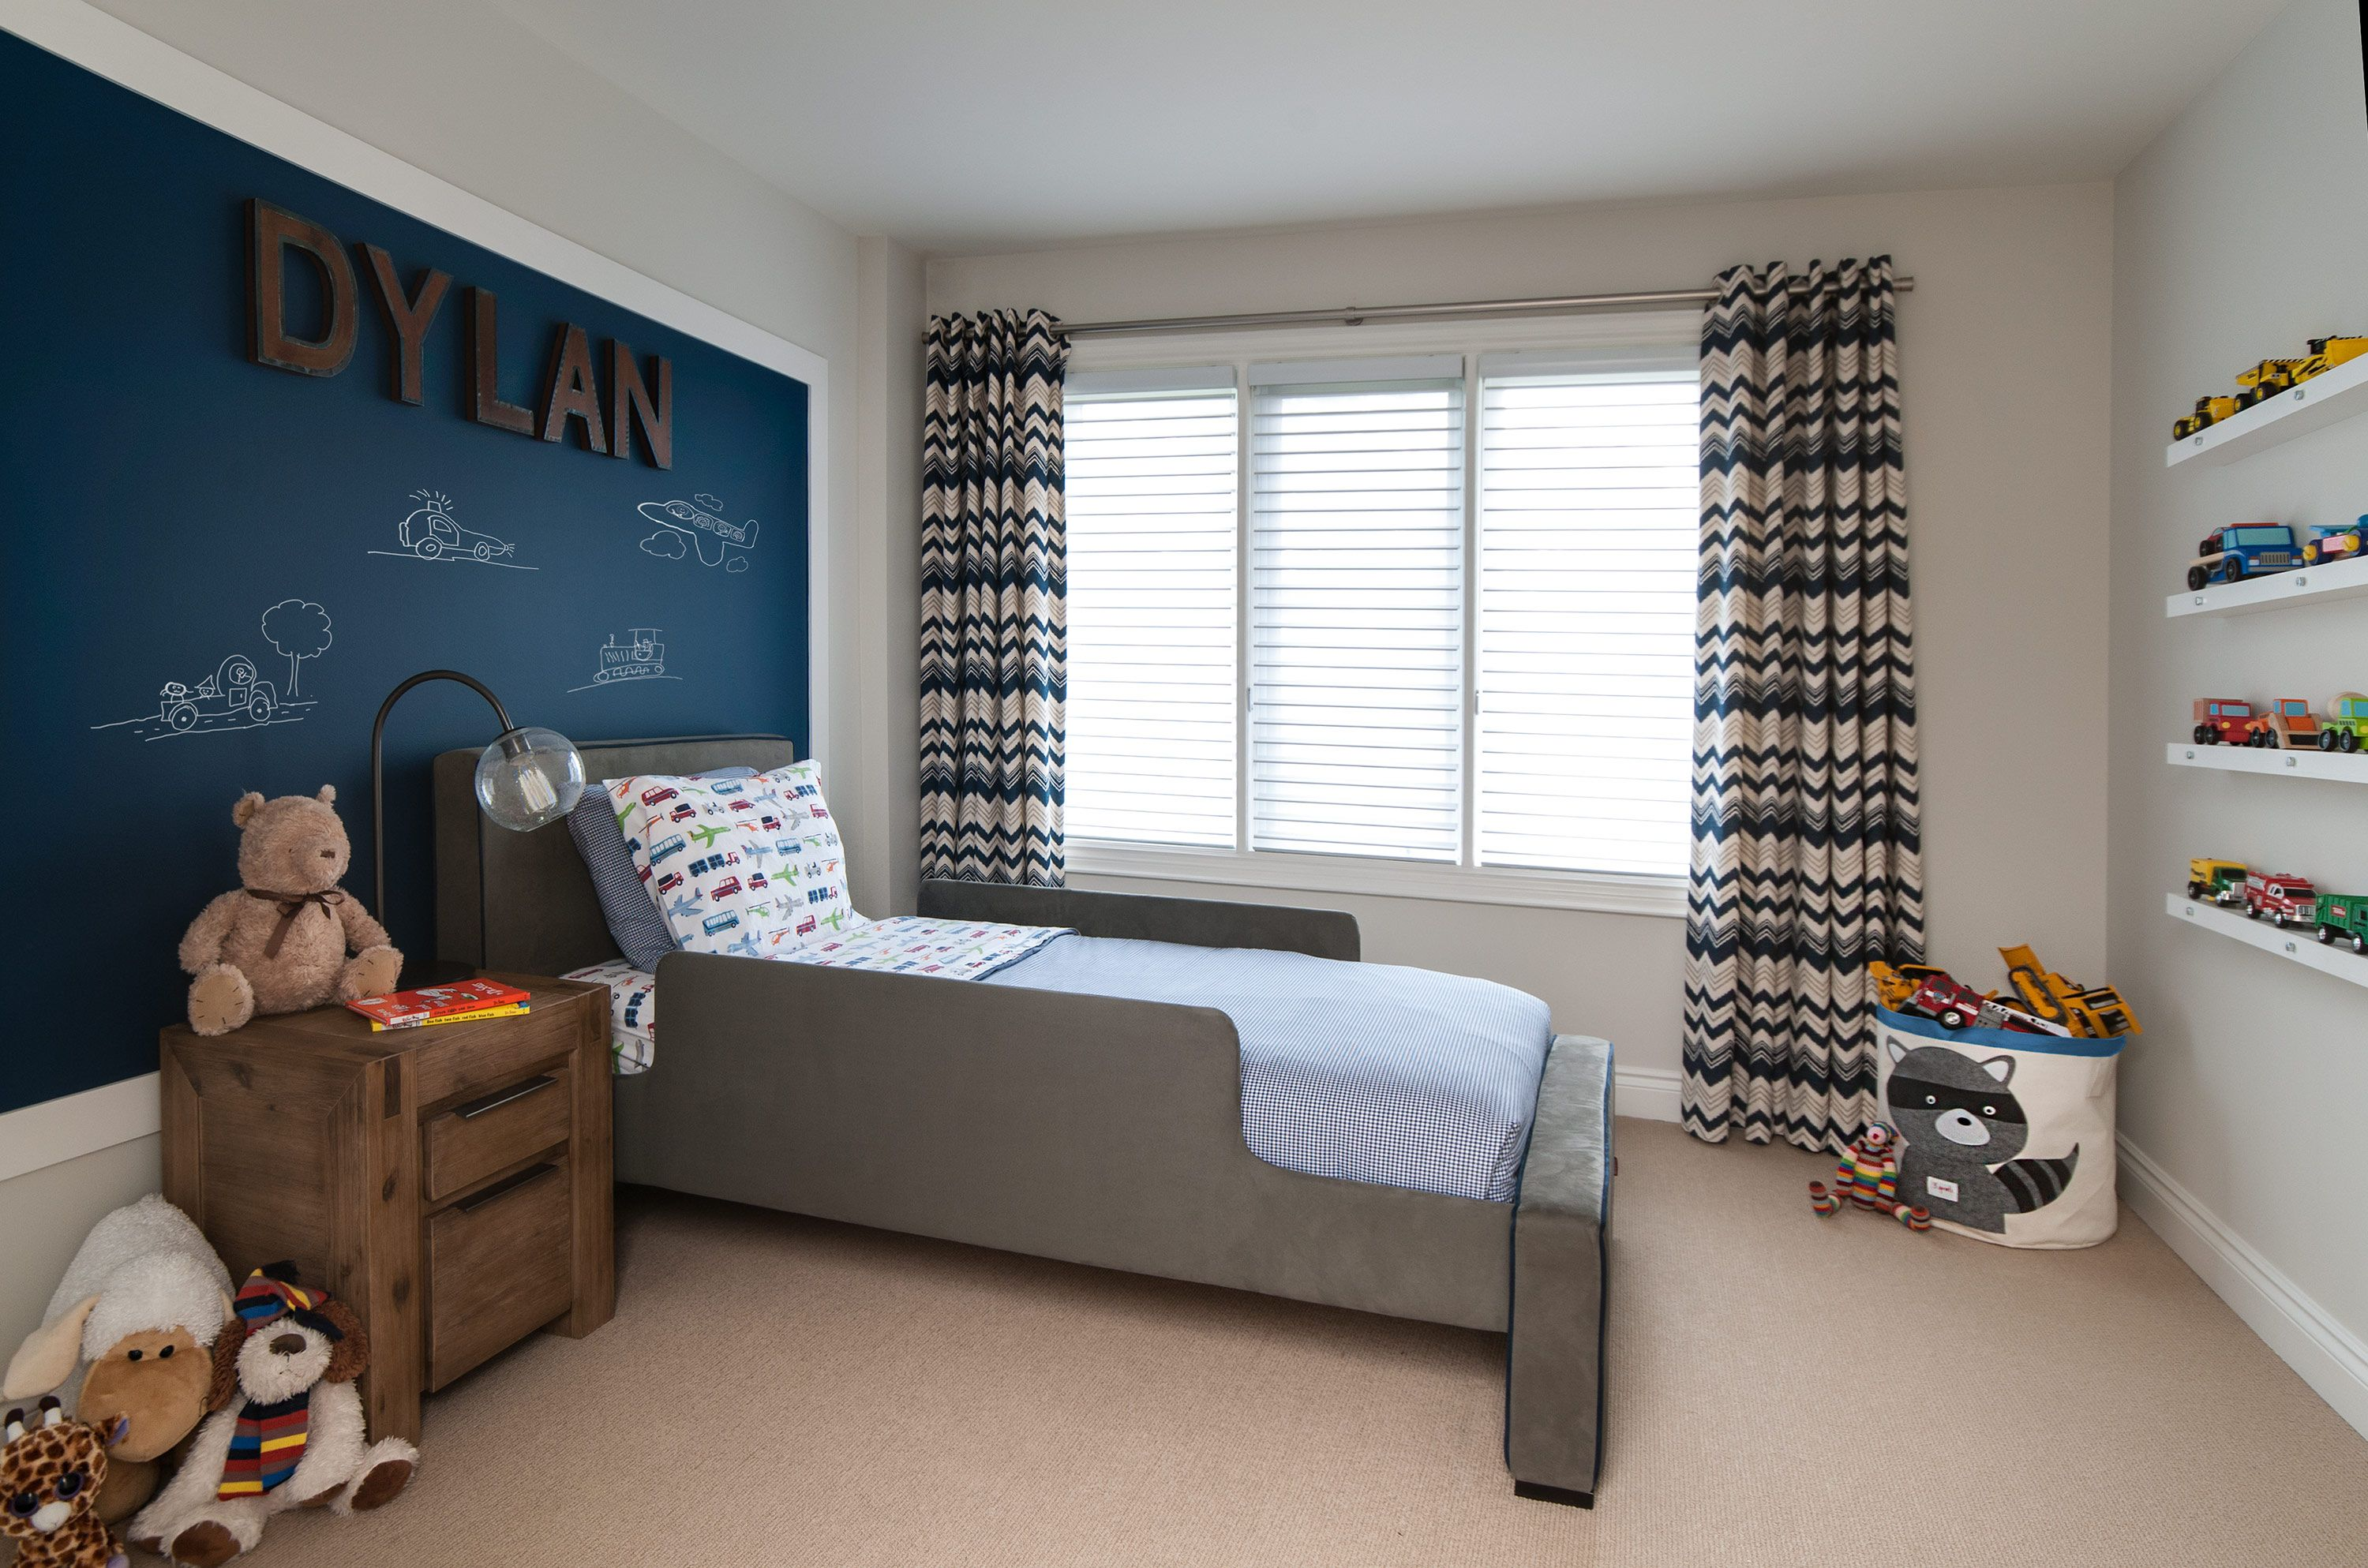 Dylan S Room Designed By Jodi Rosen Featuring The Monte Design Dorma Twin Bed In Charcoal With Navy Blue Pipin Home Theater Decor Home Decor Home Decor Store